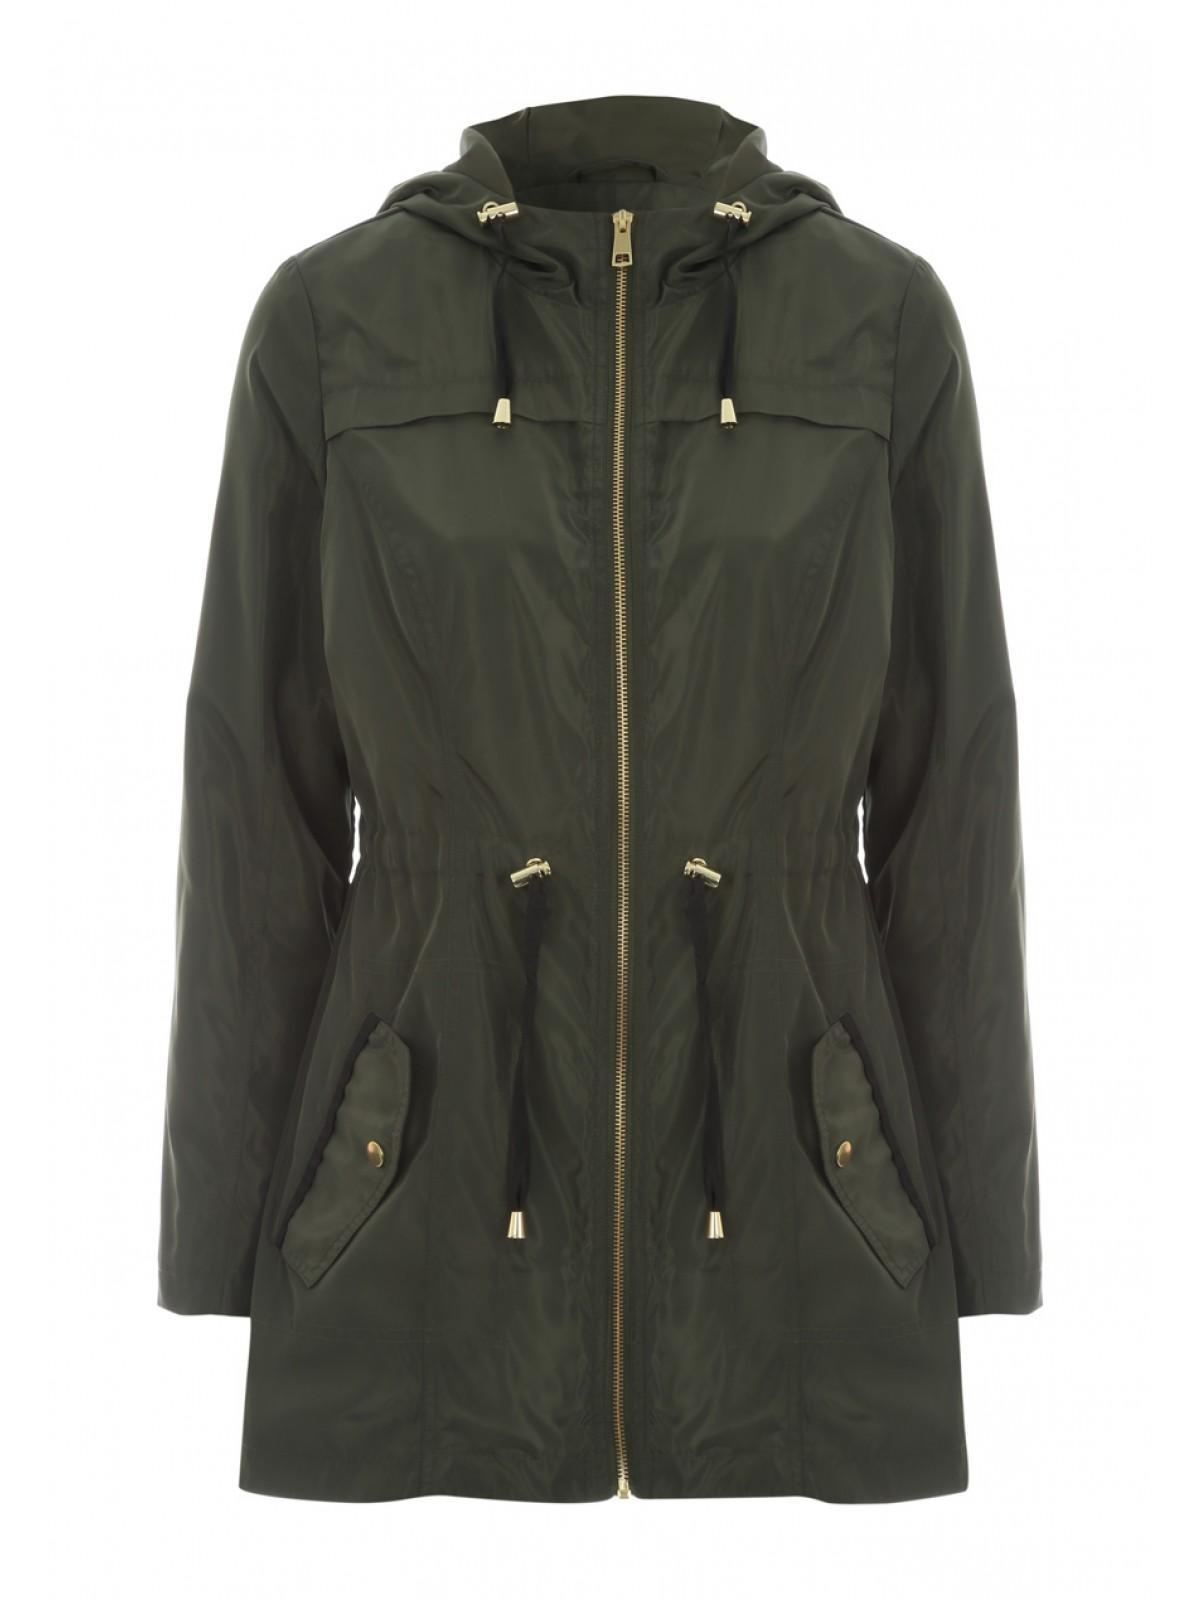 Womens Khaki Lightweight Parka Jacket | Peacocks